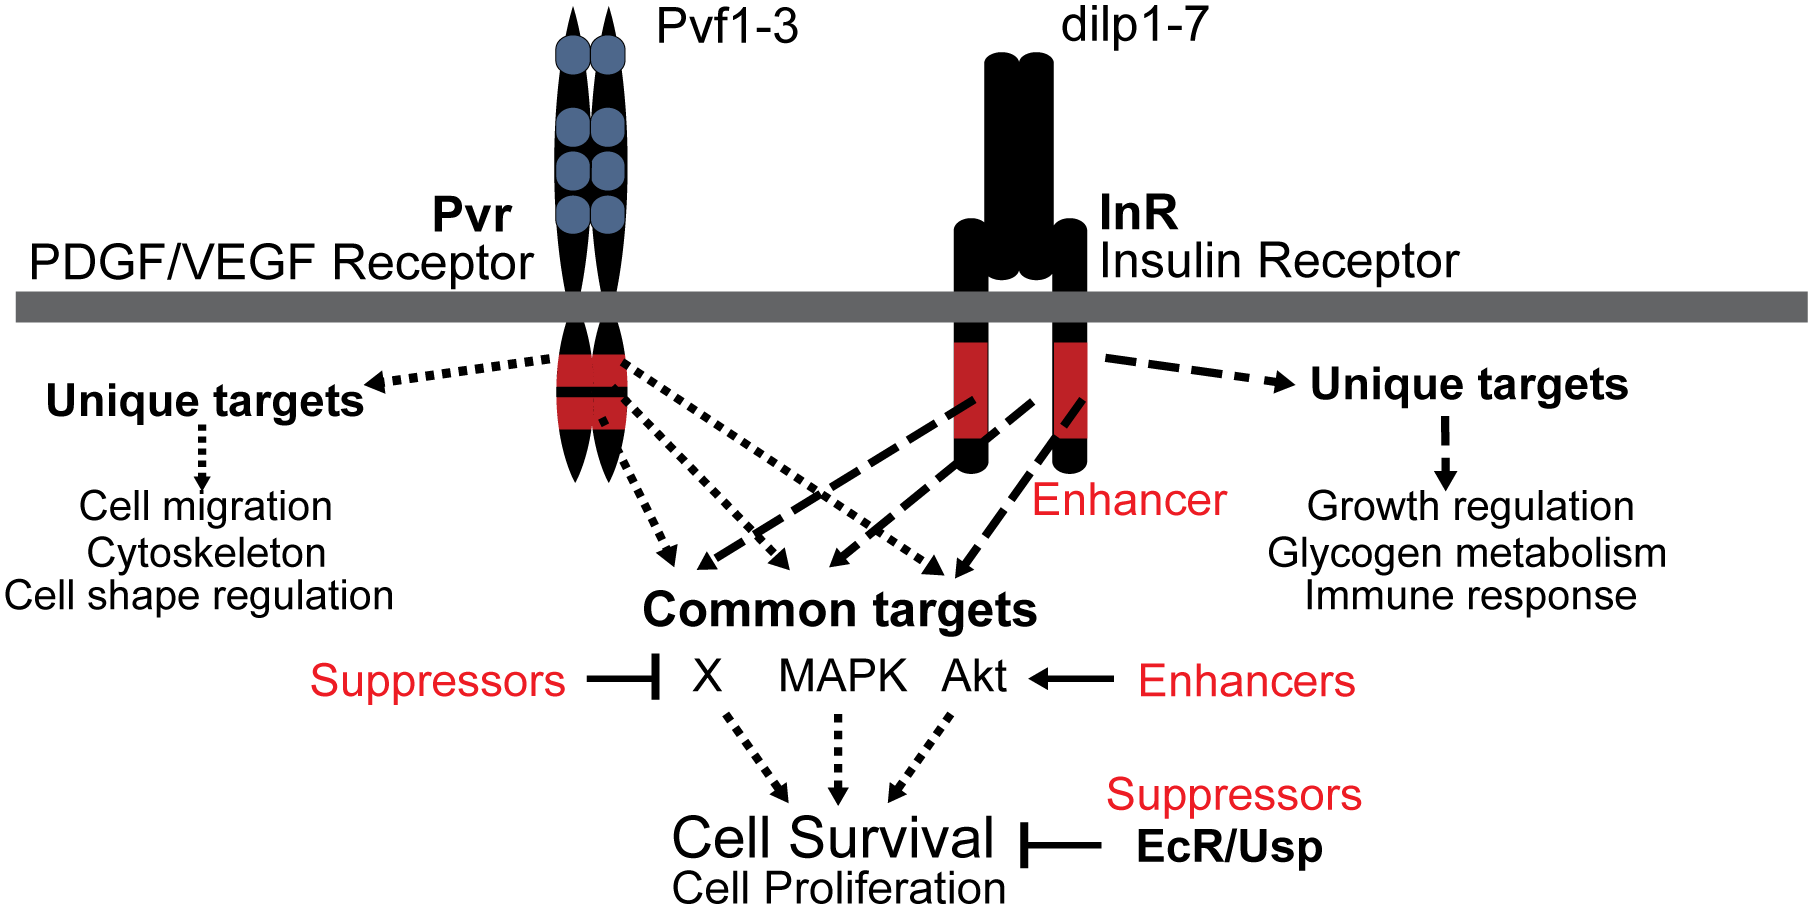 Model of Pvr and InR impact on cell survival control.